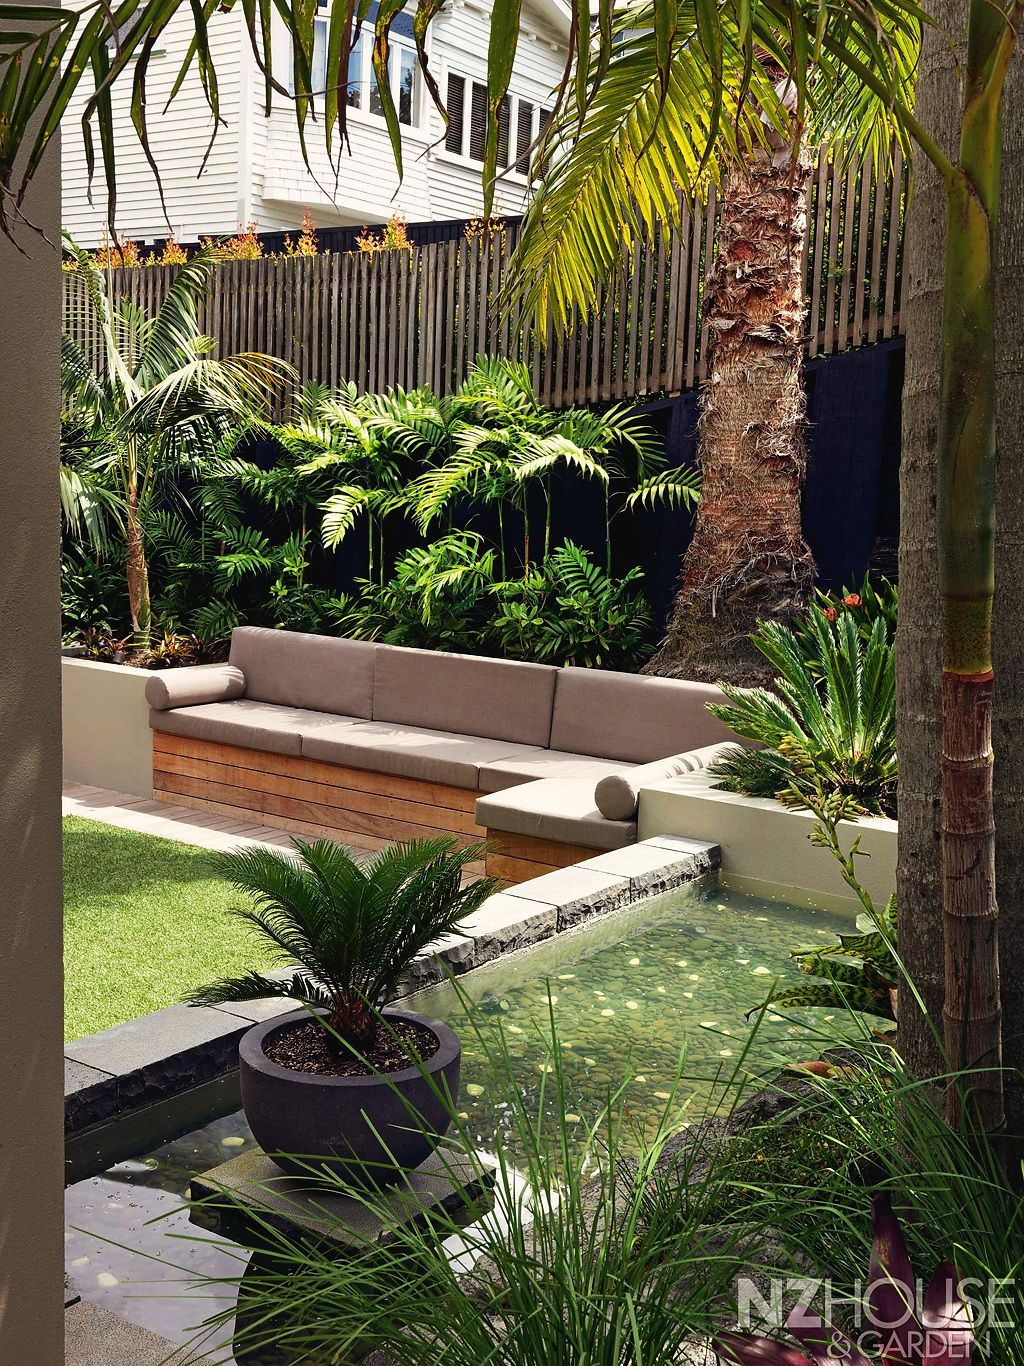 Home landscape design via christina khandan irvine for Courtyard landscape design